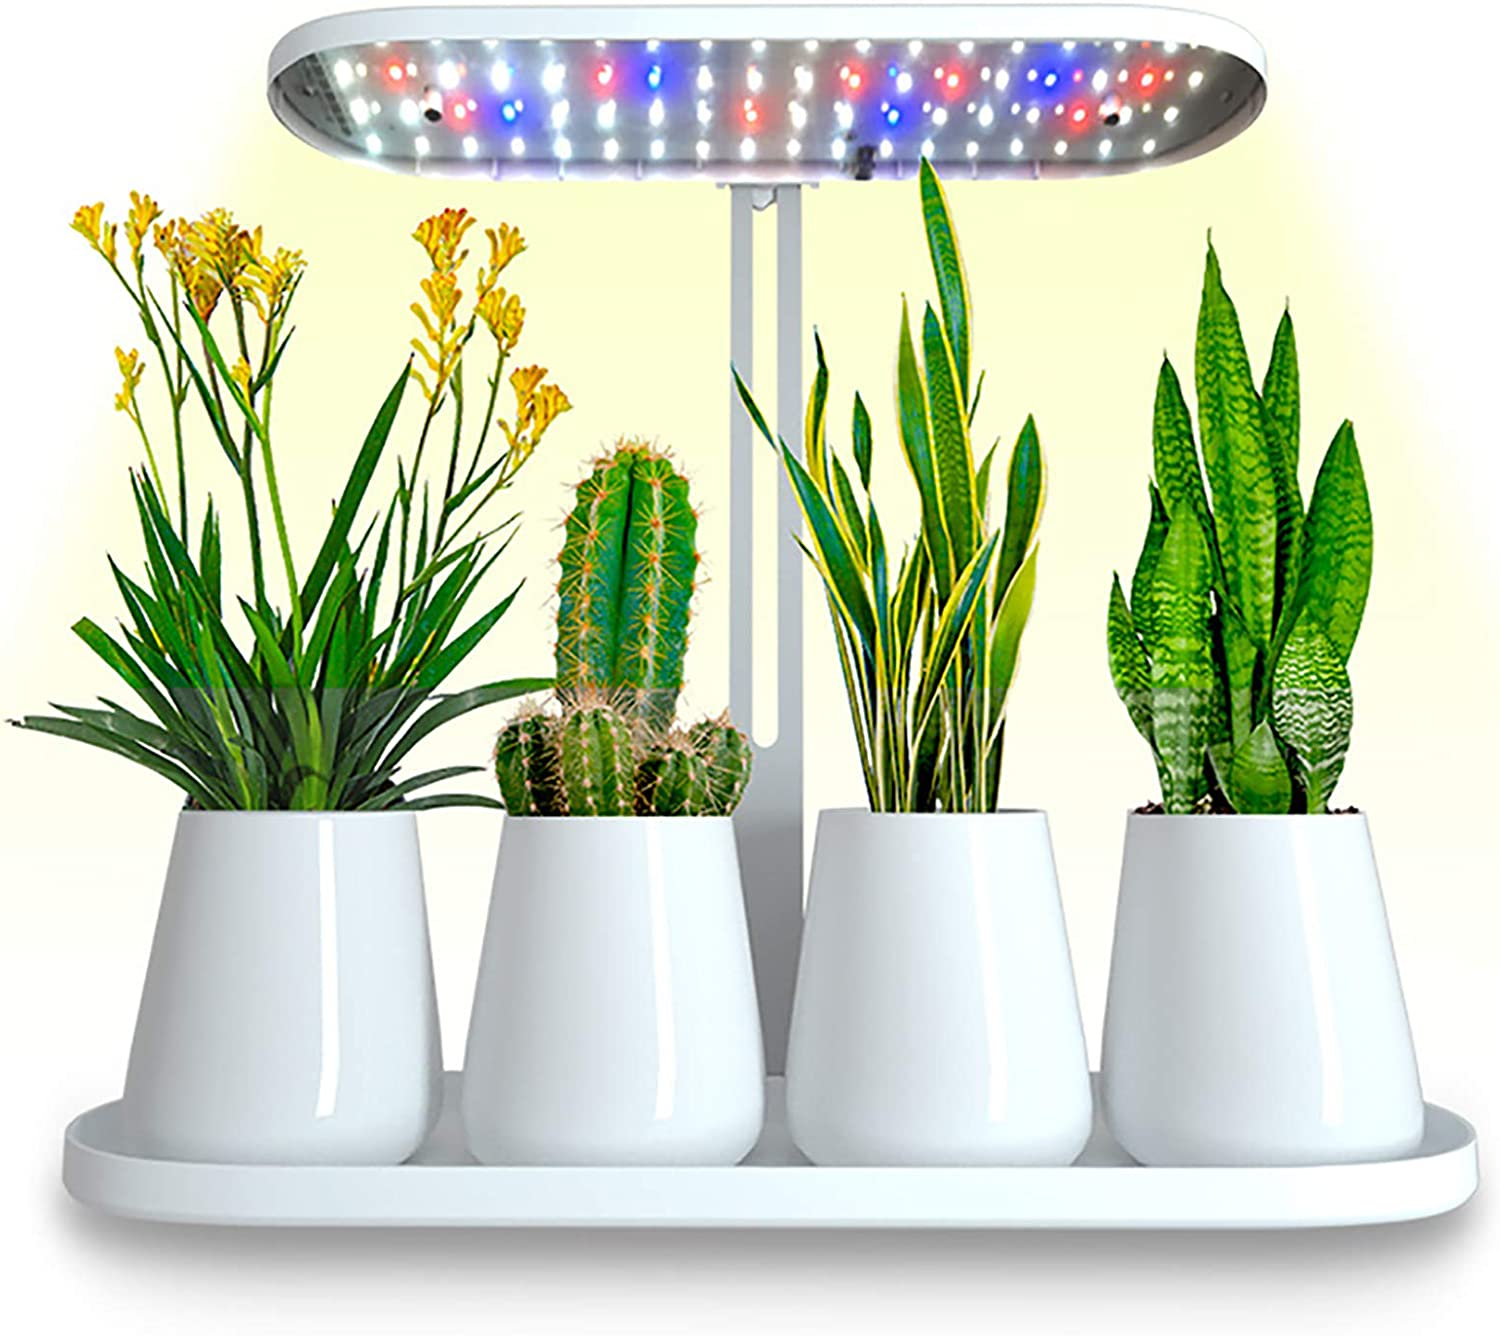 TWGDH Indoor Full Spectrum LED Kitchen Garden Germination Kit, Germination System with Height Adjustable LED Lamp,Automatic Timer (White)